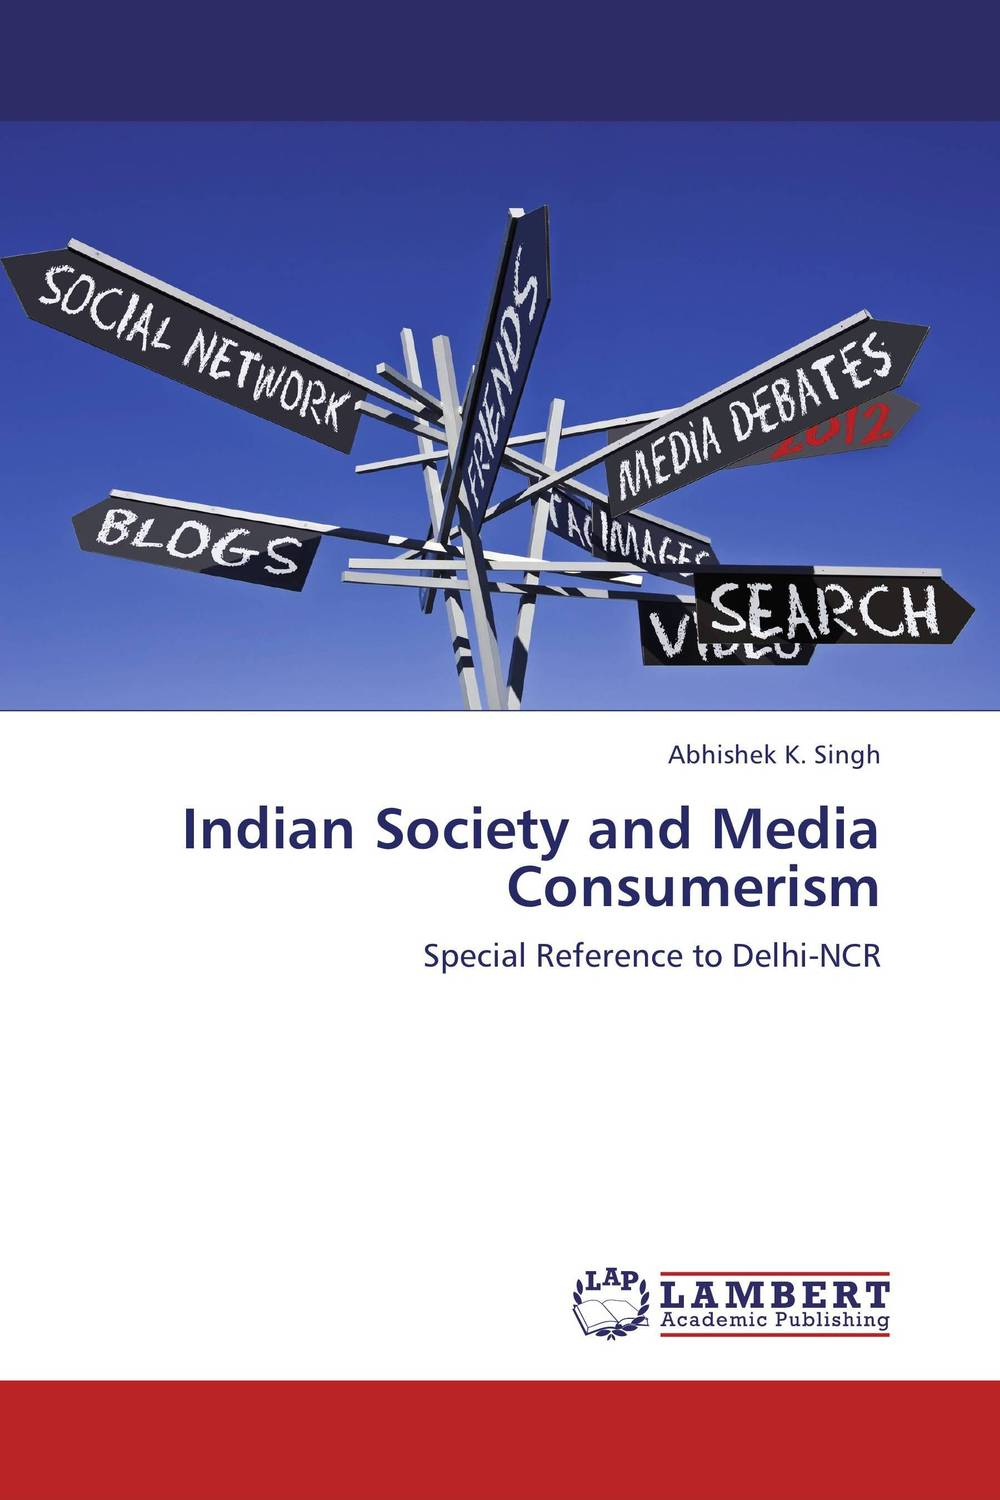 Indian Society and Media Consumerism shakespeare after mass media [9780312294540]